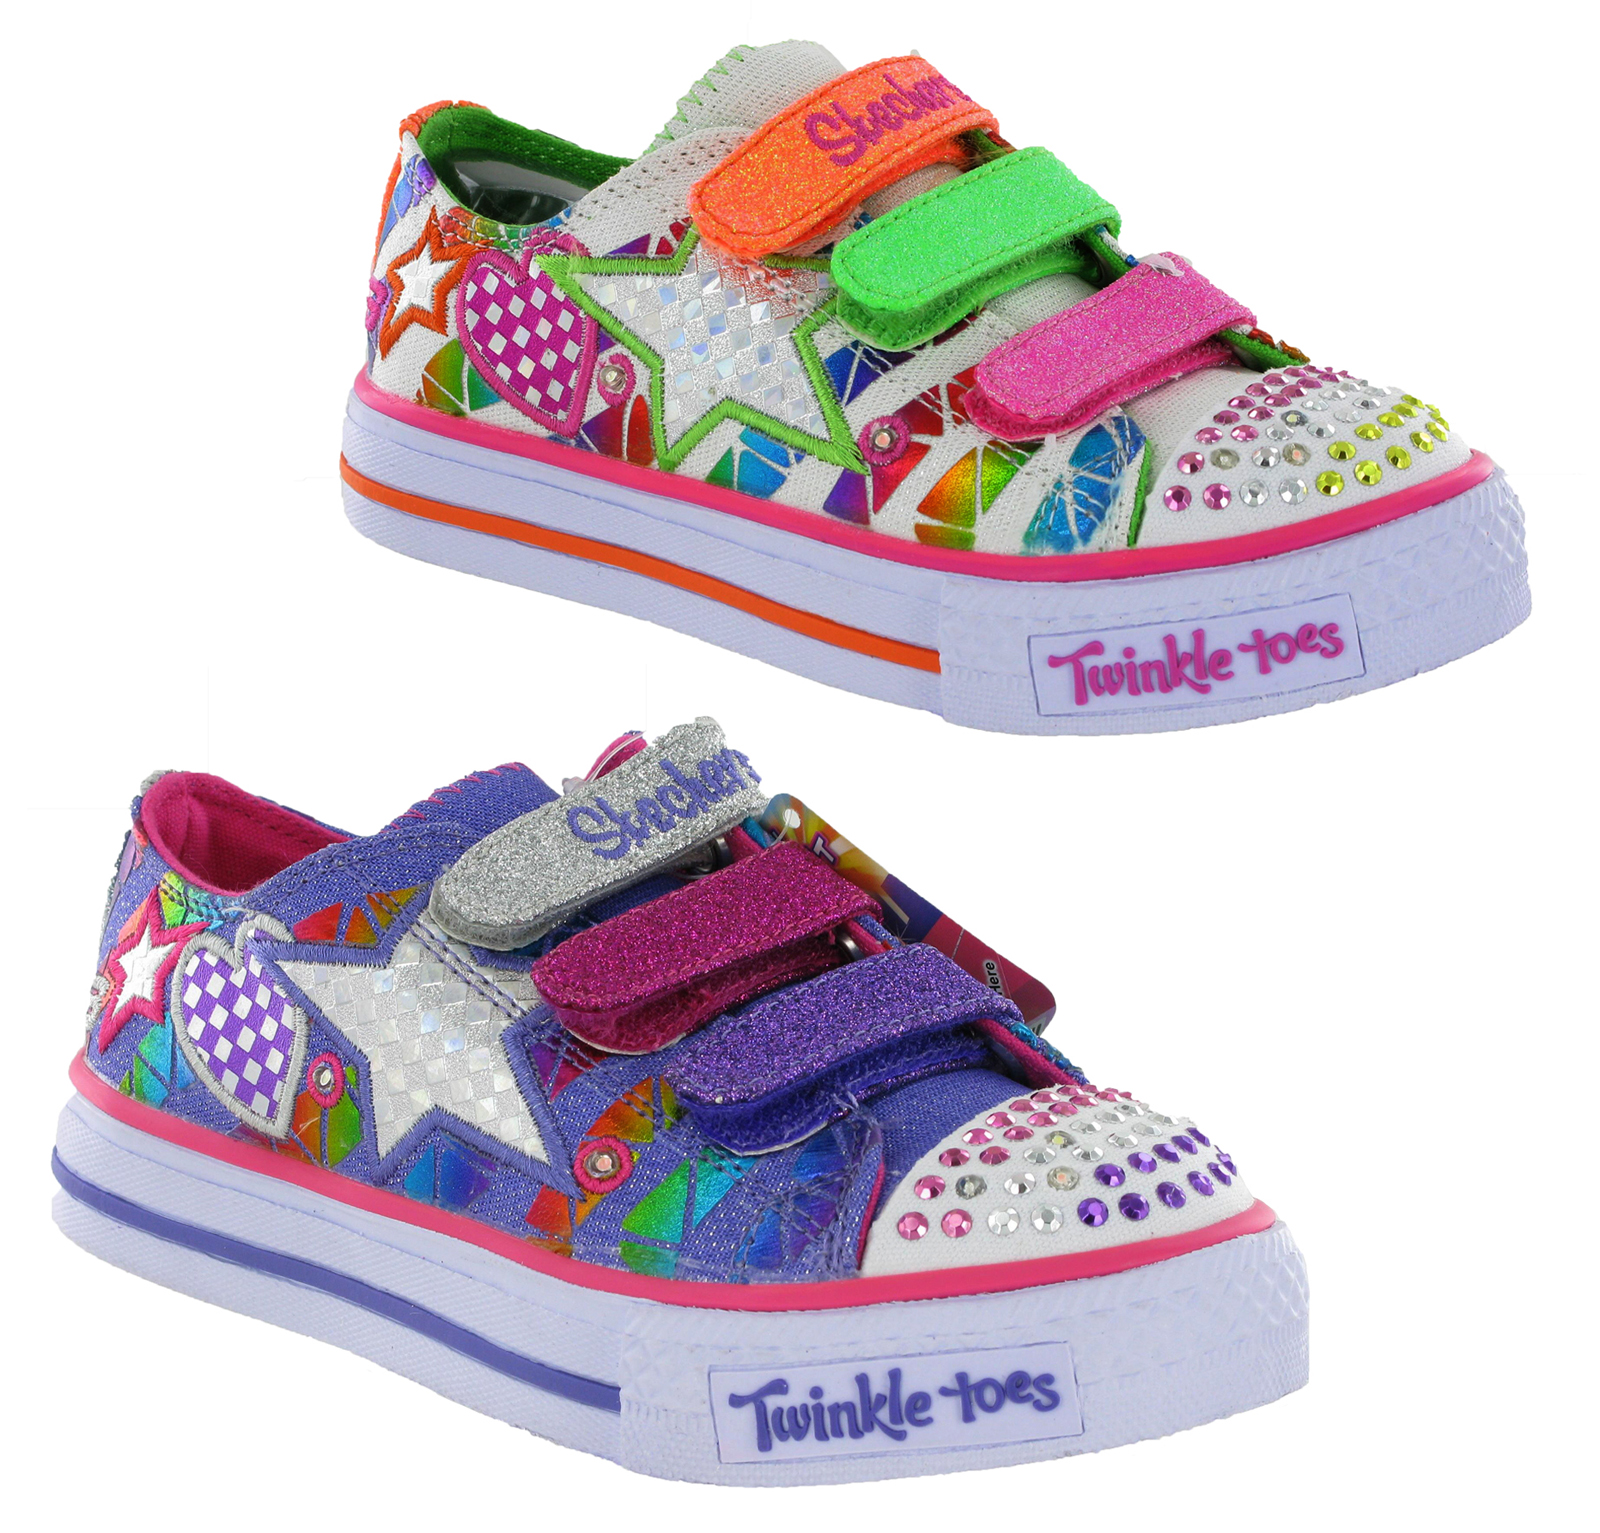 new girls kids infants skechers twinkle toes light up. Black Bedroom Furniture Sets. Home Design Ideas